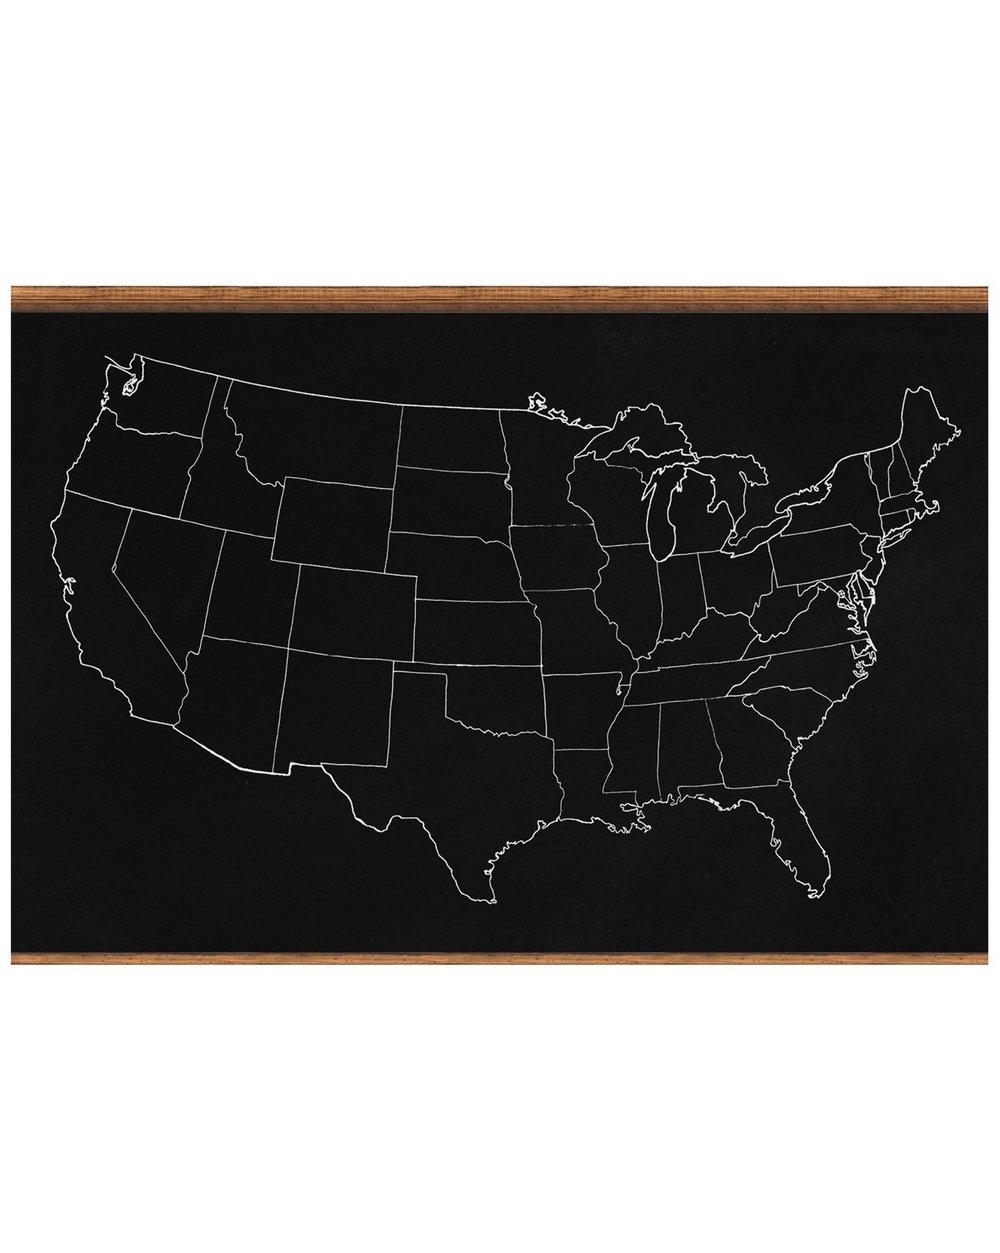 Usa_Chalkboard_Map_1.jpg